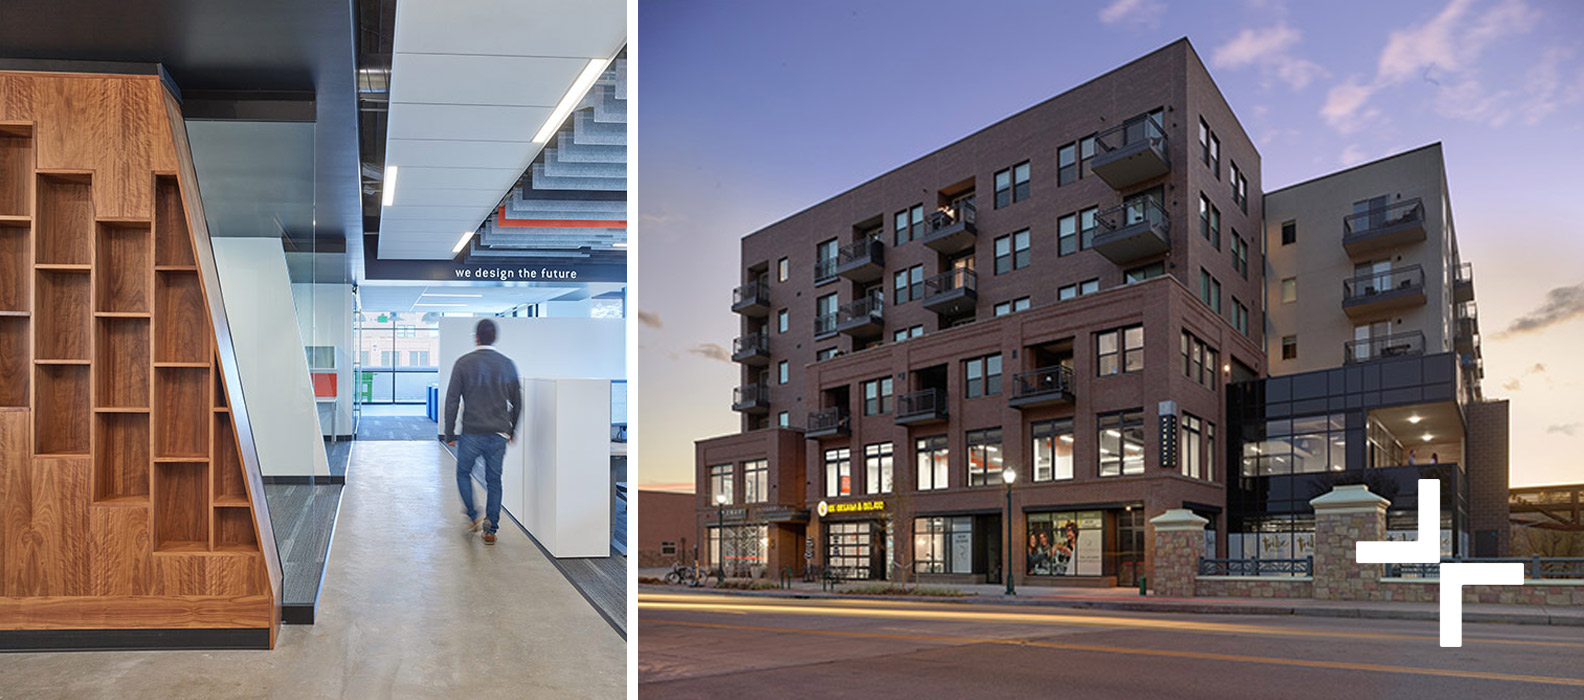 Colorado Hollis + Miller office growth in 2020